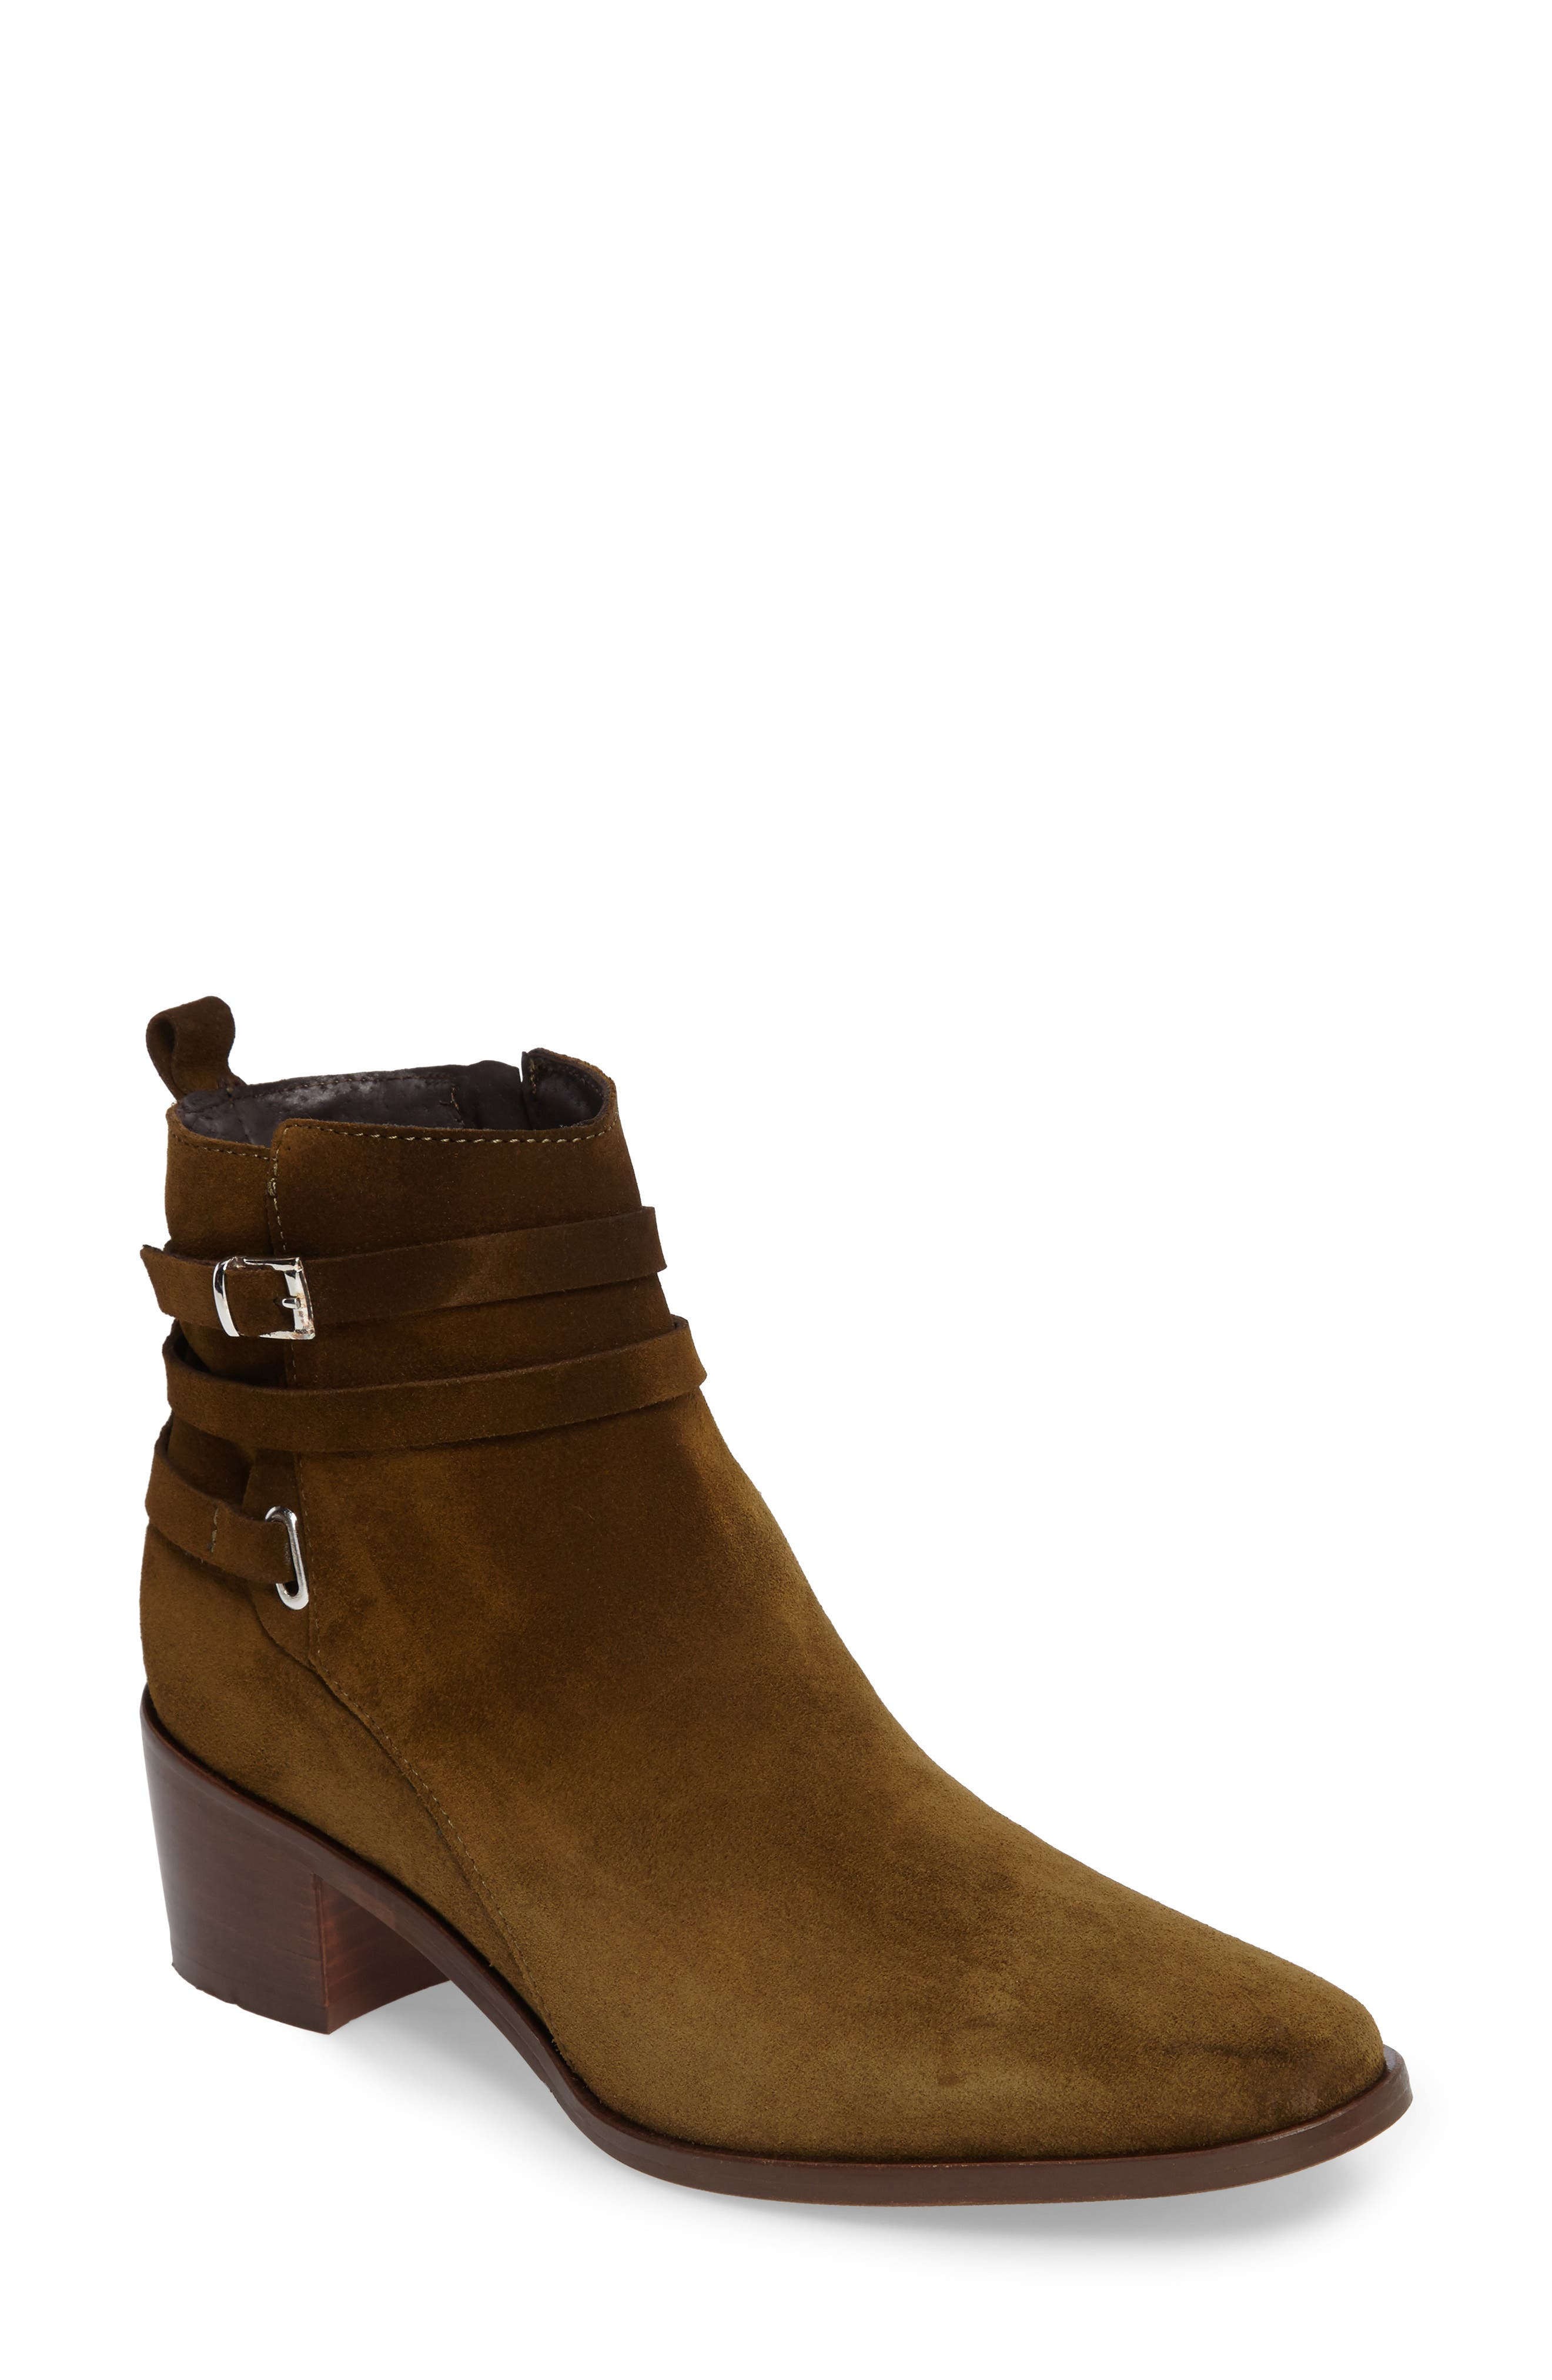 Hunter Bootie,                         Main,                         color, Khaki Suede